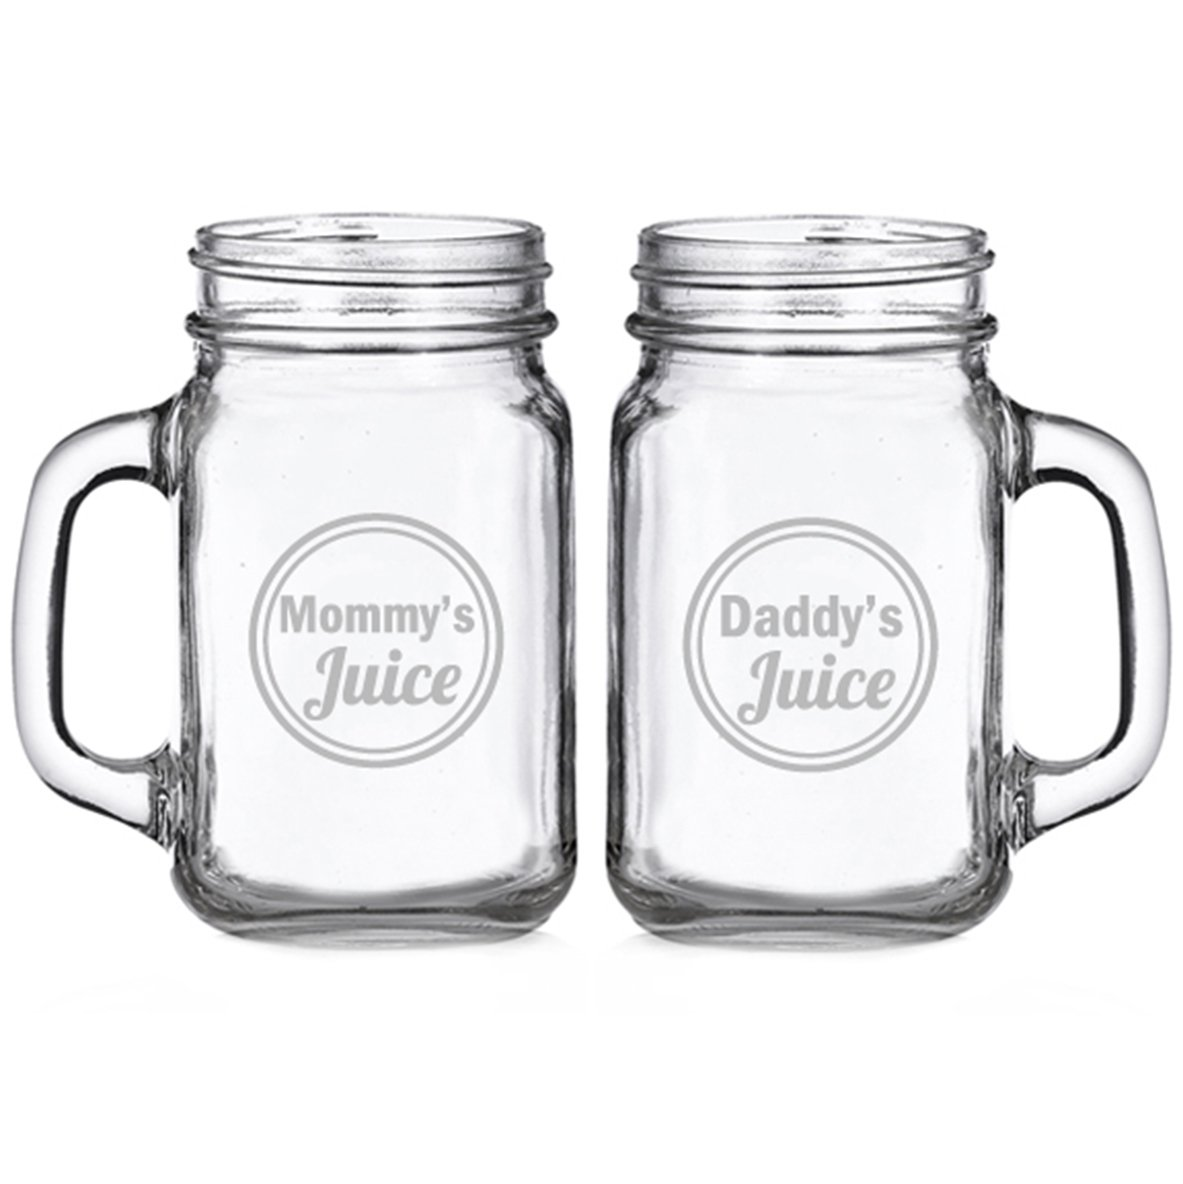 Mommy's Juice and Daddy's Juice Engraved Glass Mason Mugs (set of 2)